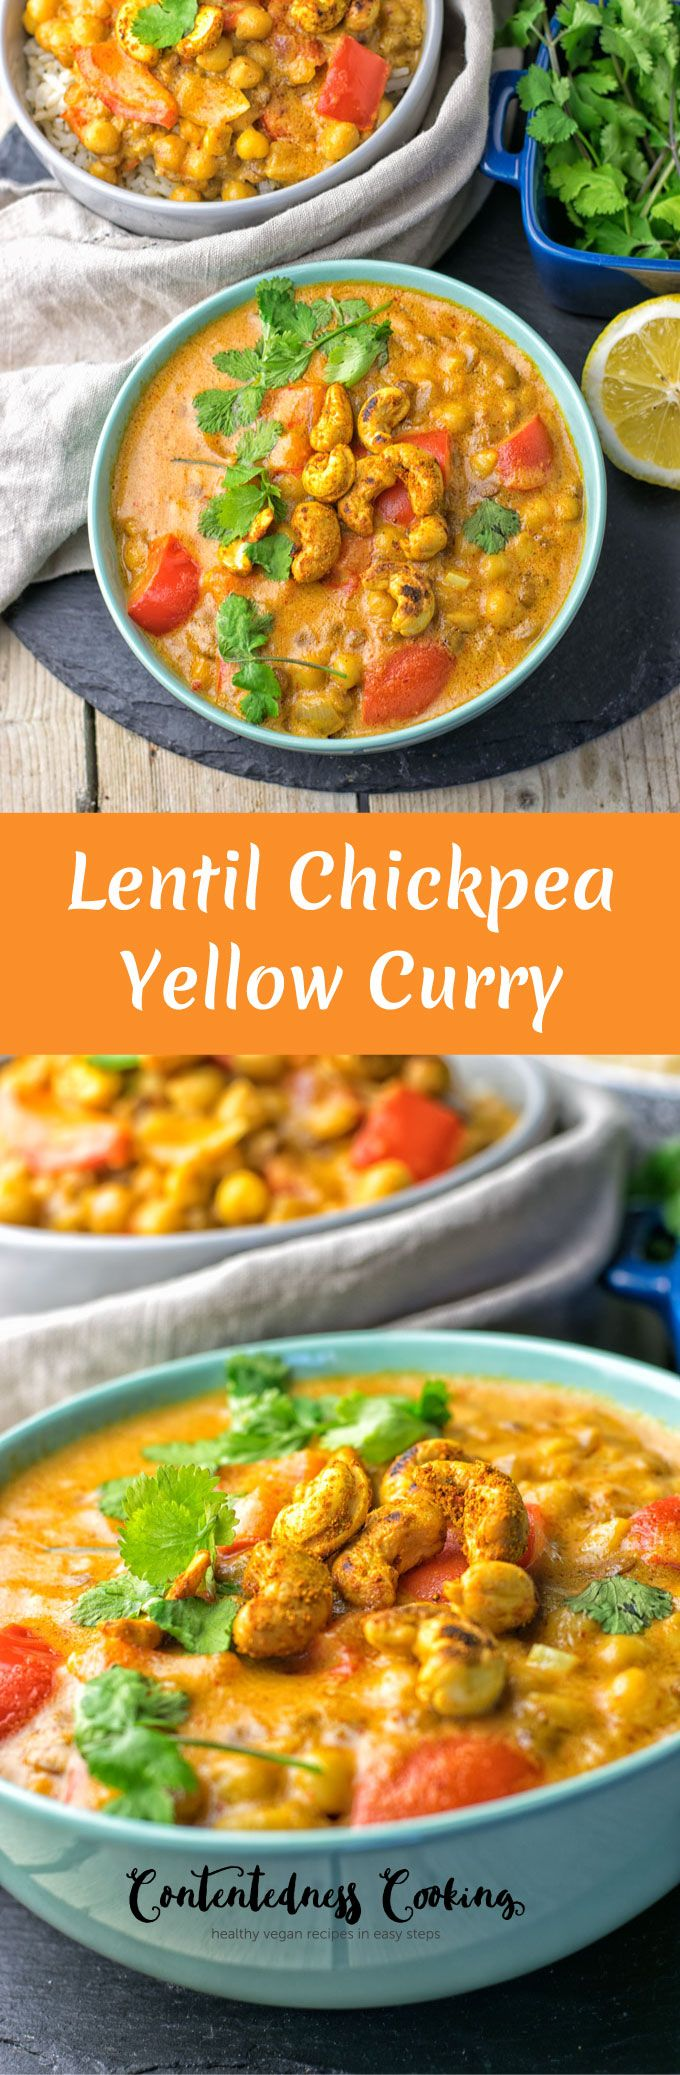 This Lentil Chickpea Yellow Curry is vegan and gluten free and you can make it with just 6 ingredients in 2 easy steps. Get ready for the most incredible, delicious plant-based lunch or dinner.